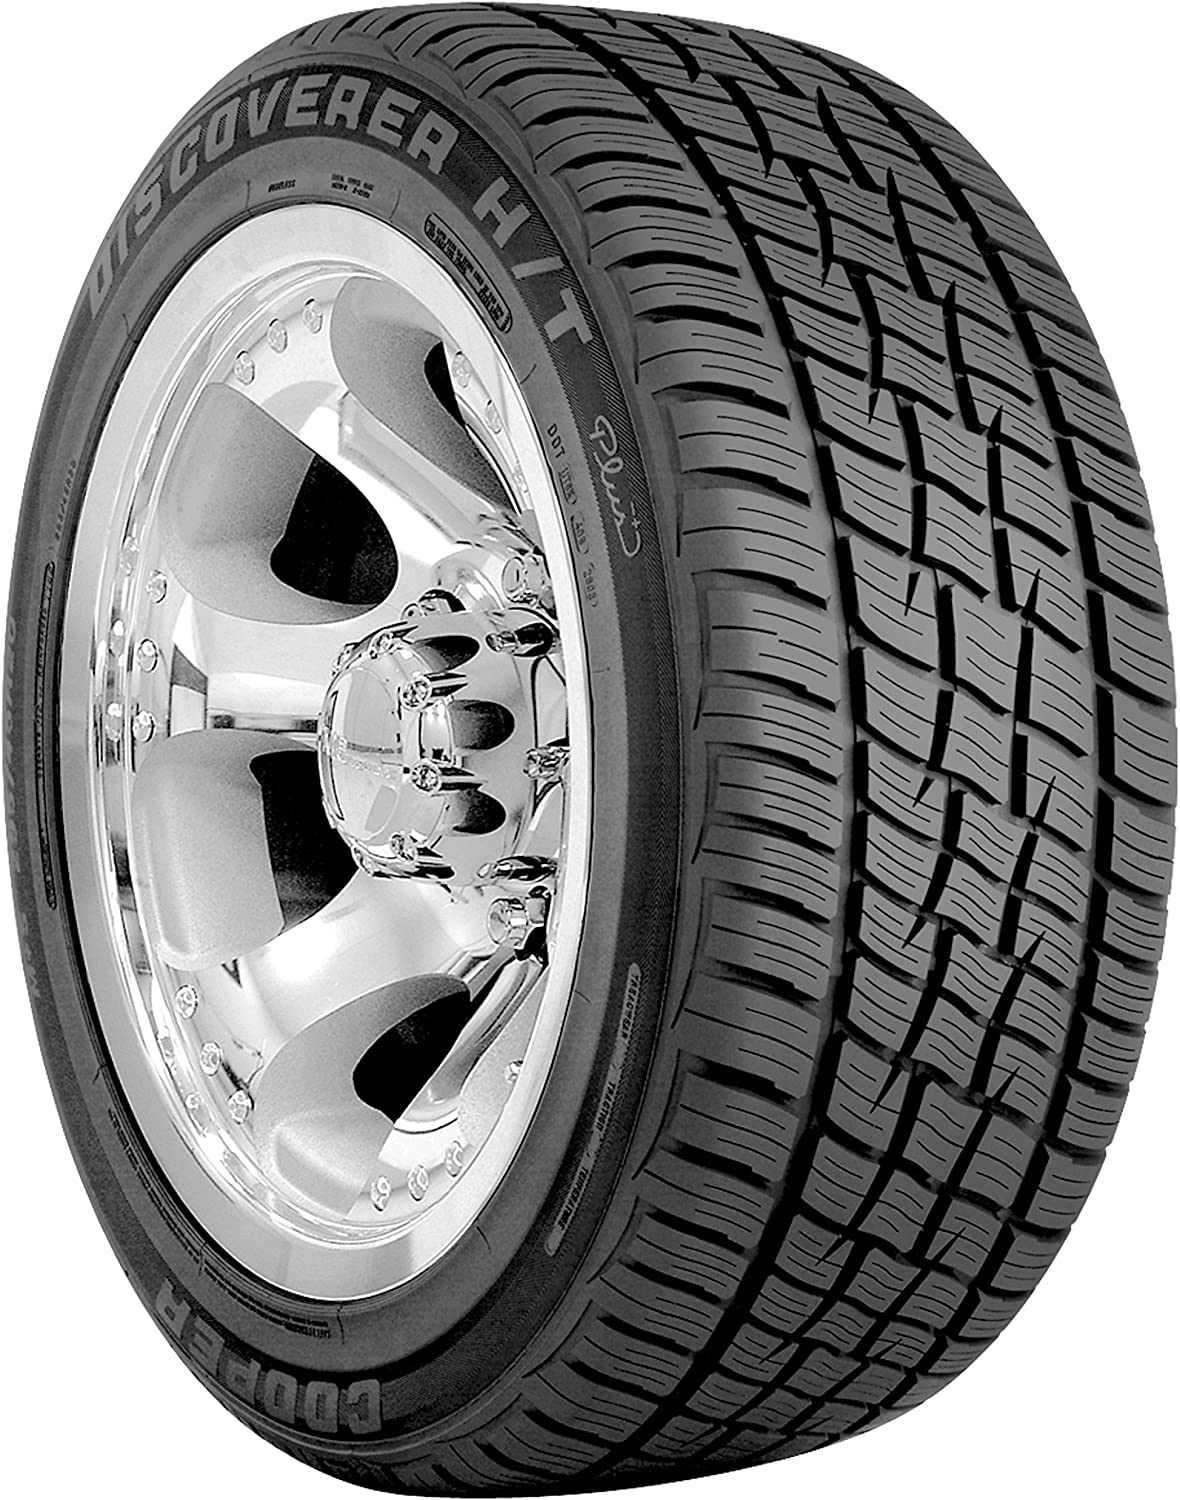 Cooper Discoverer All-Season Wet Weather Tire